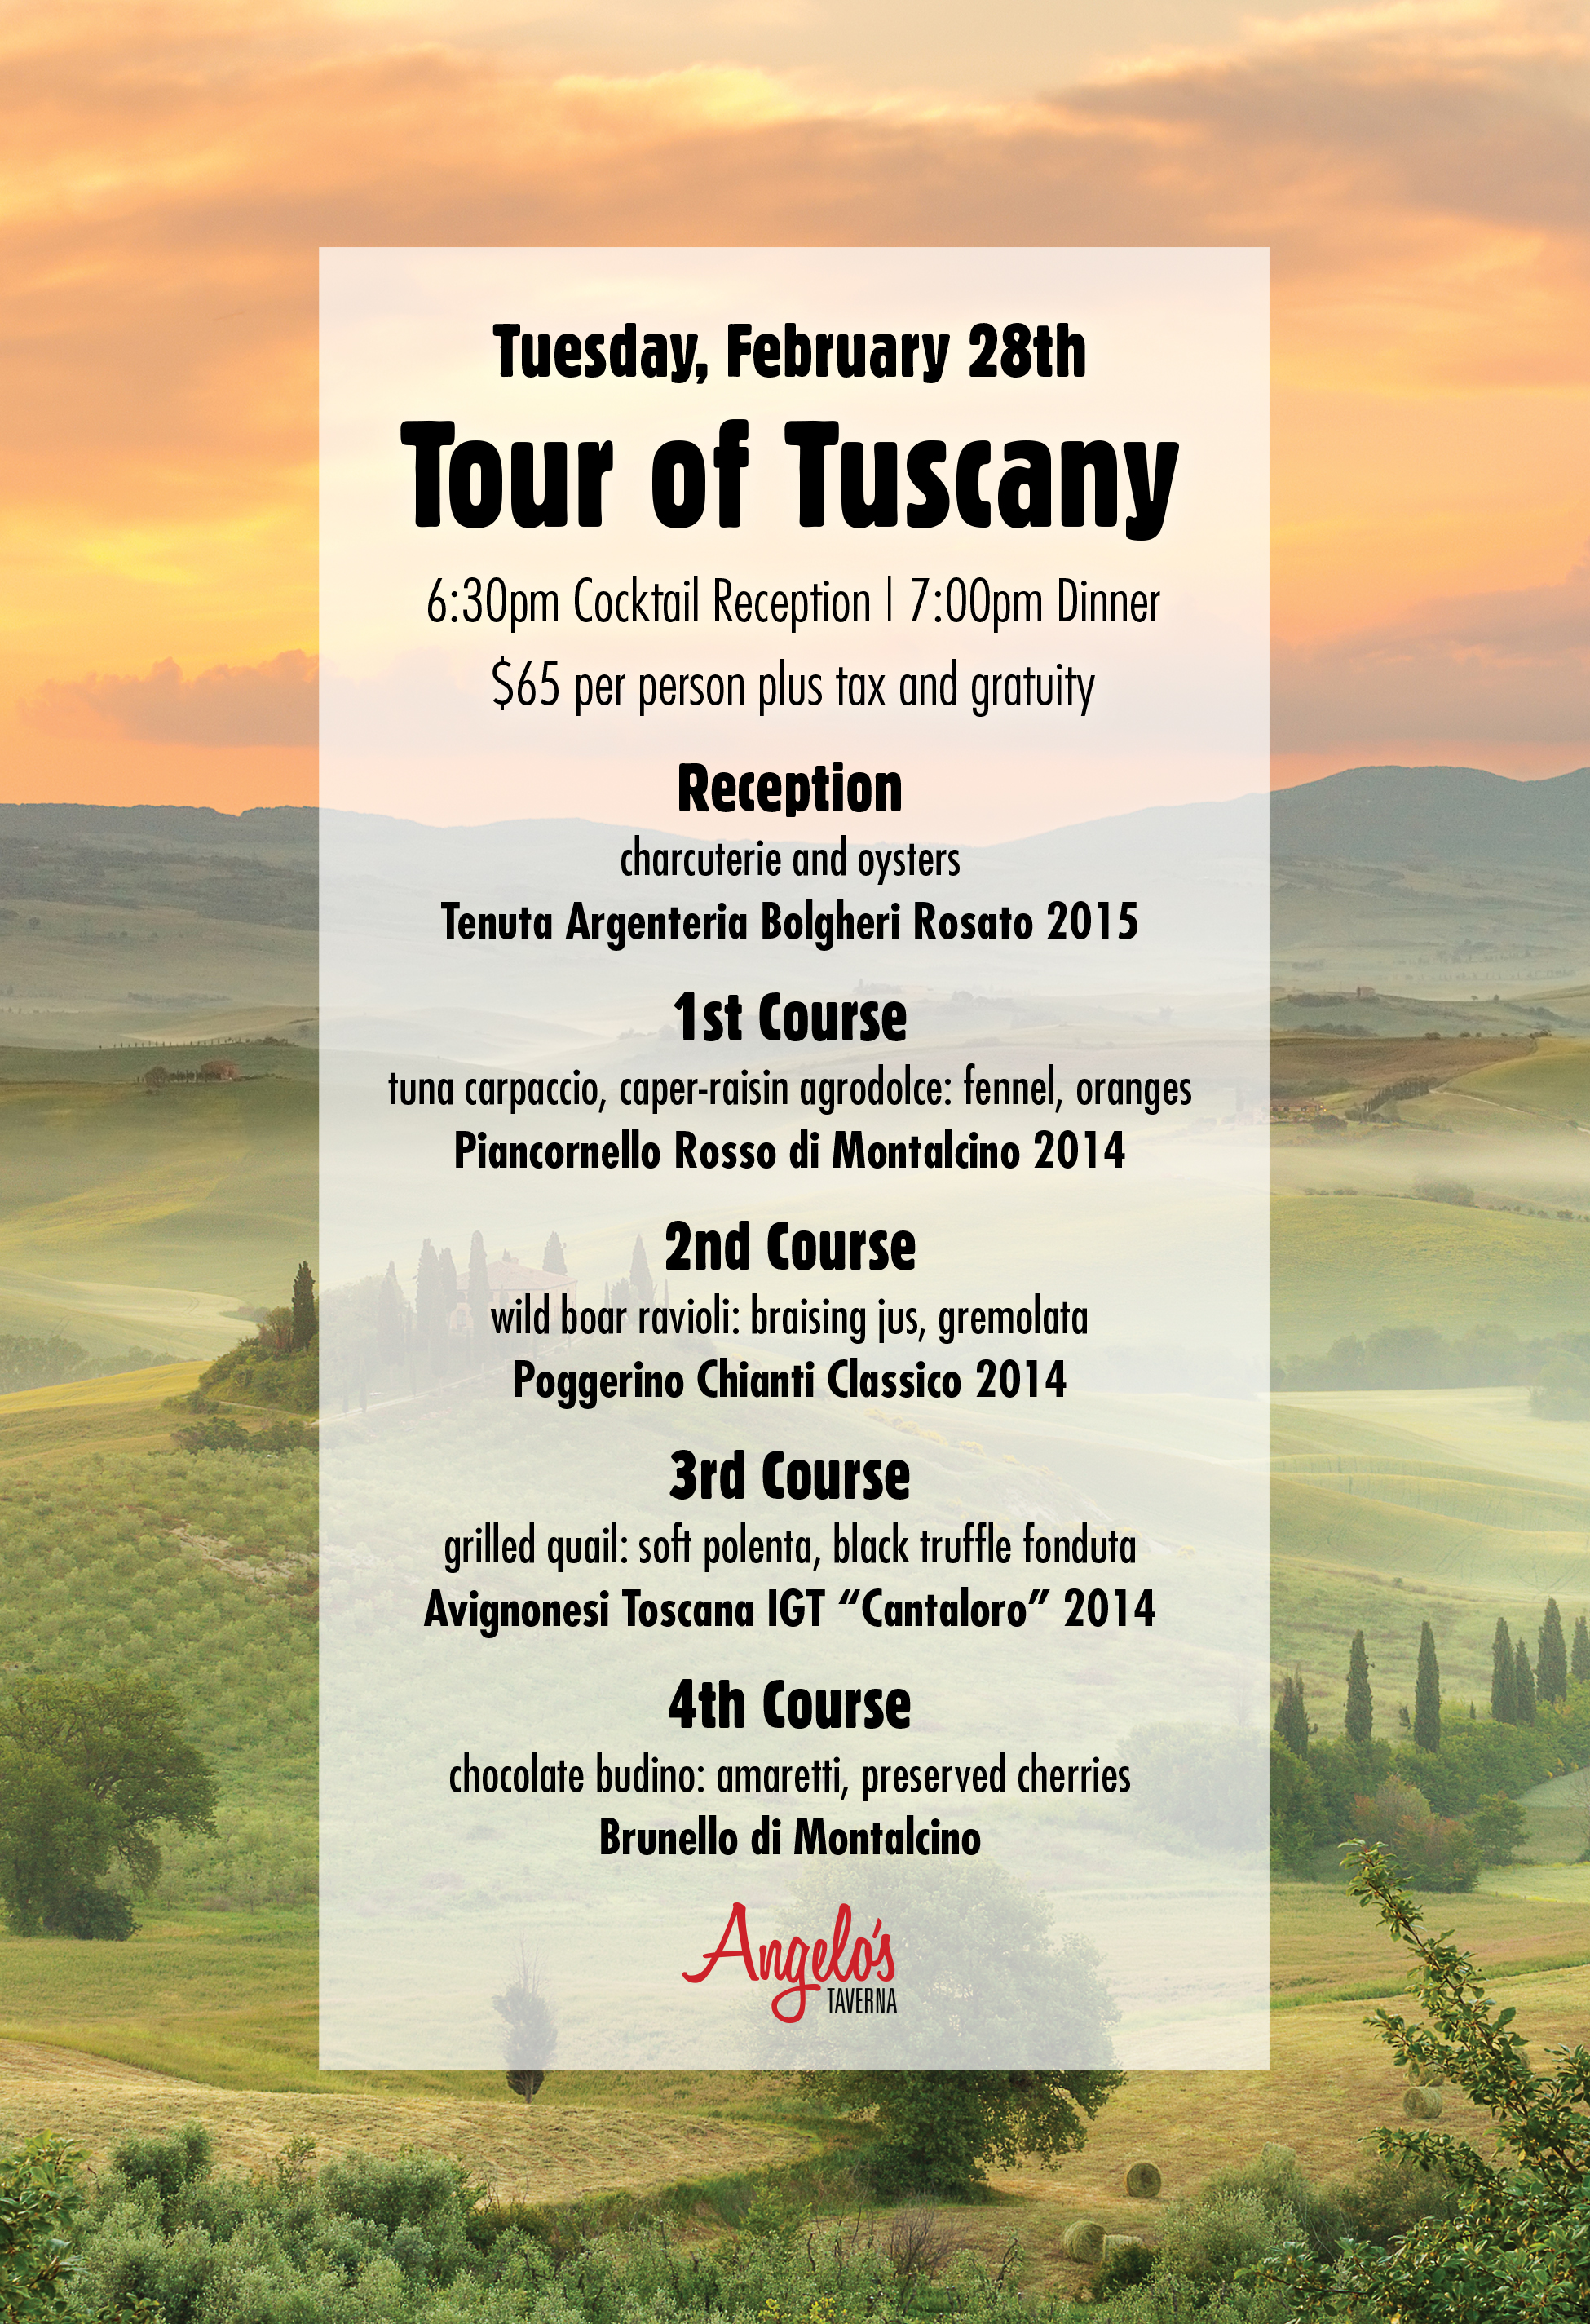 Tour of Tuscany menu Facebook